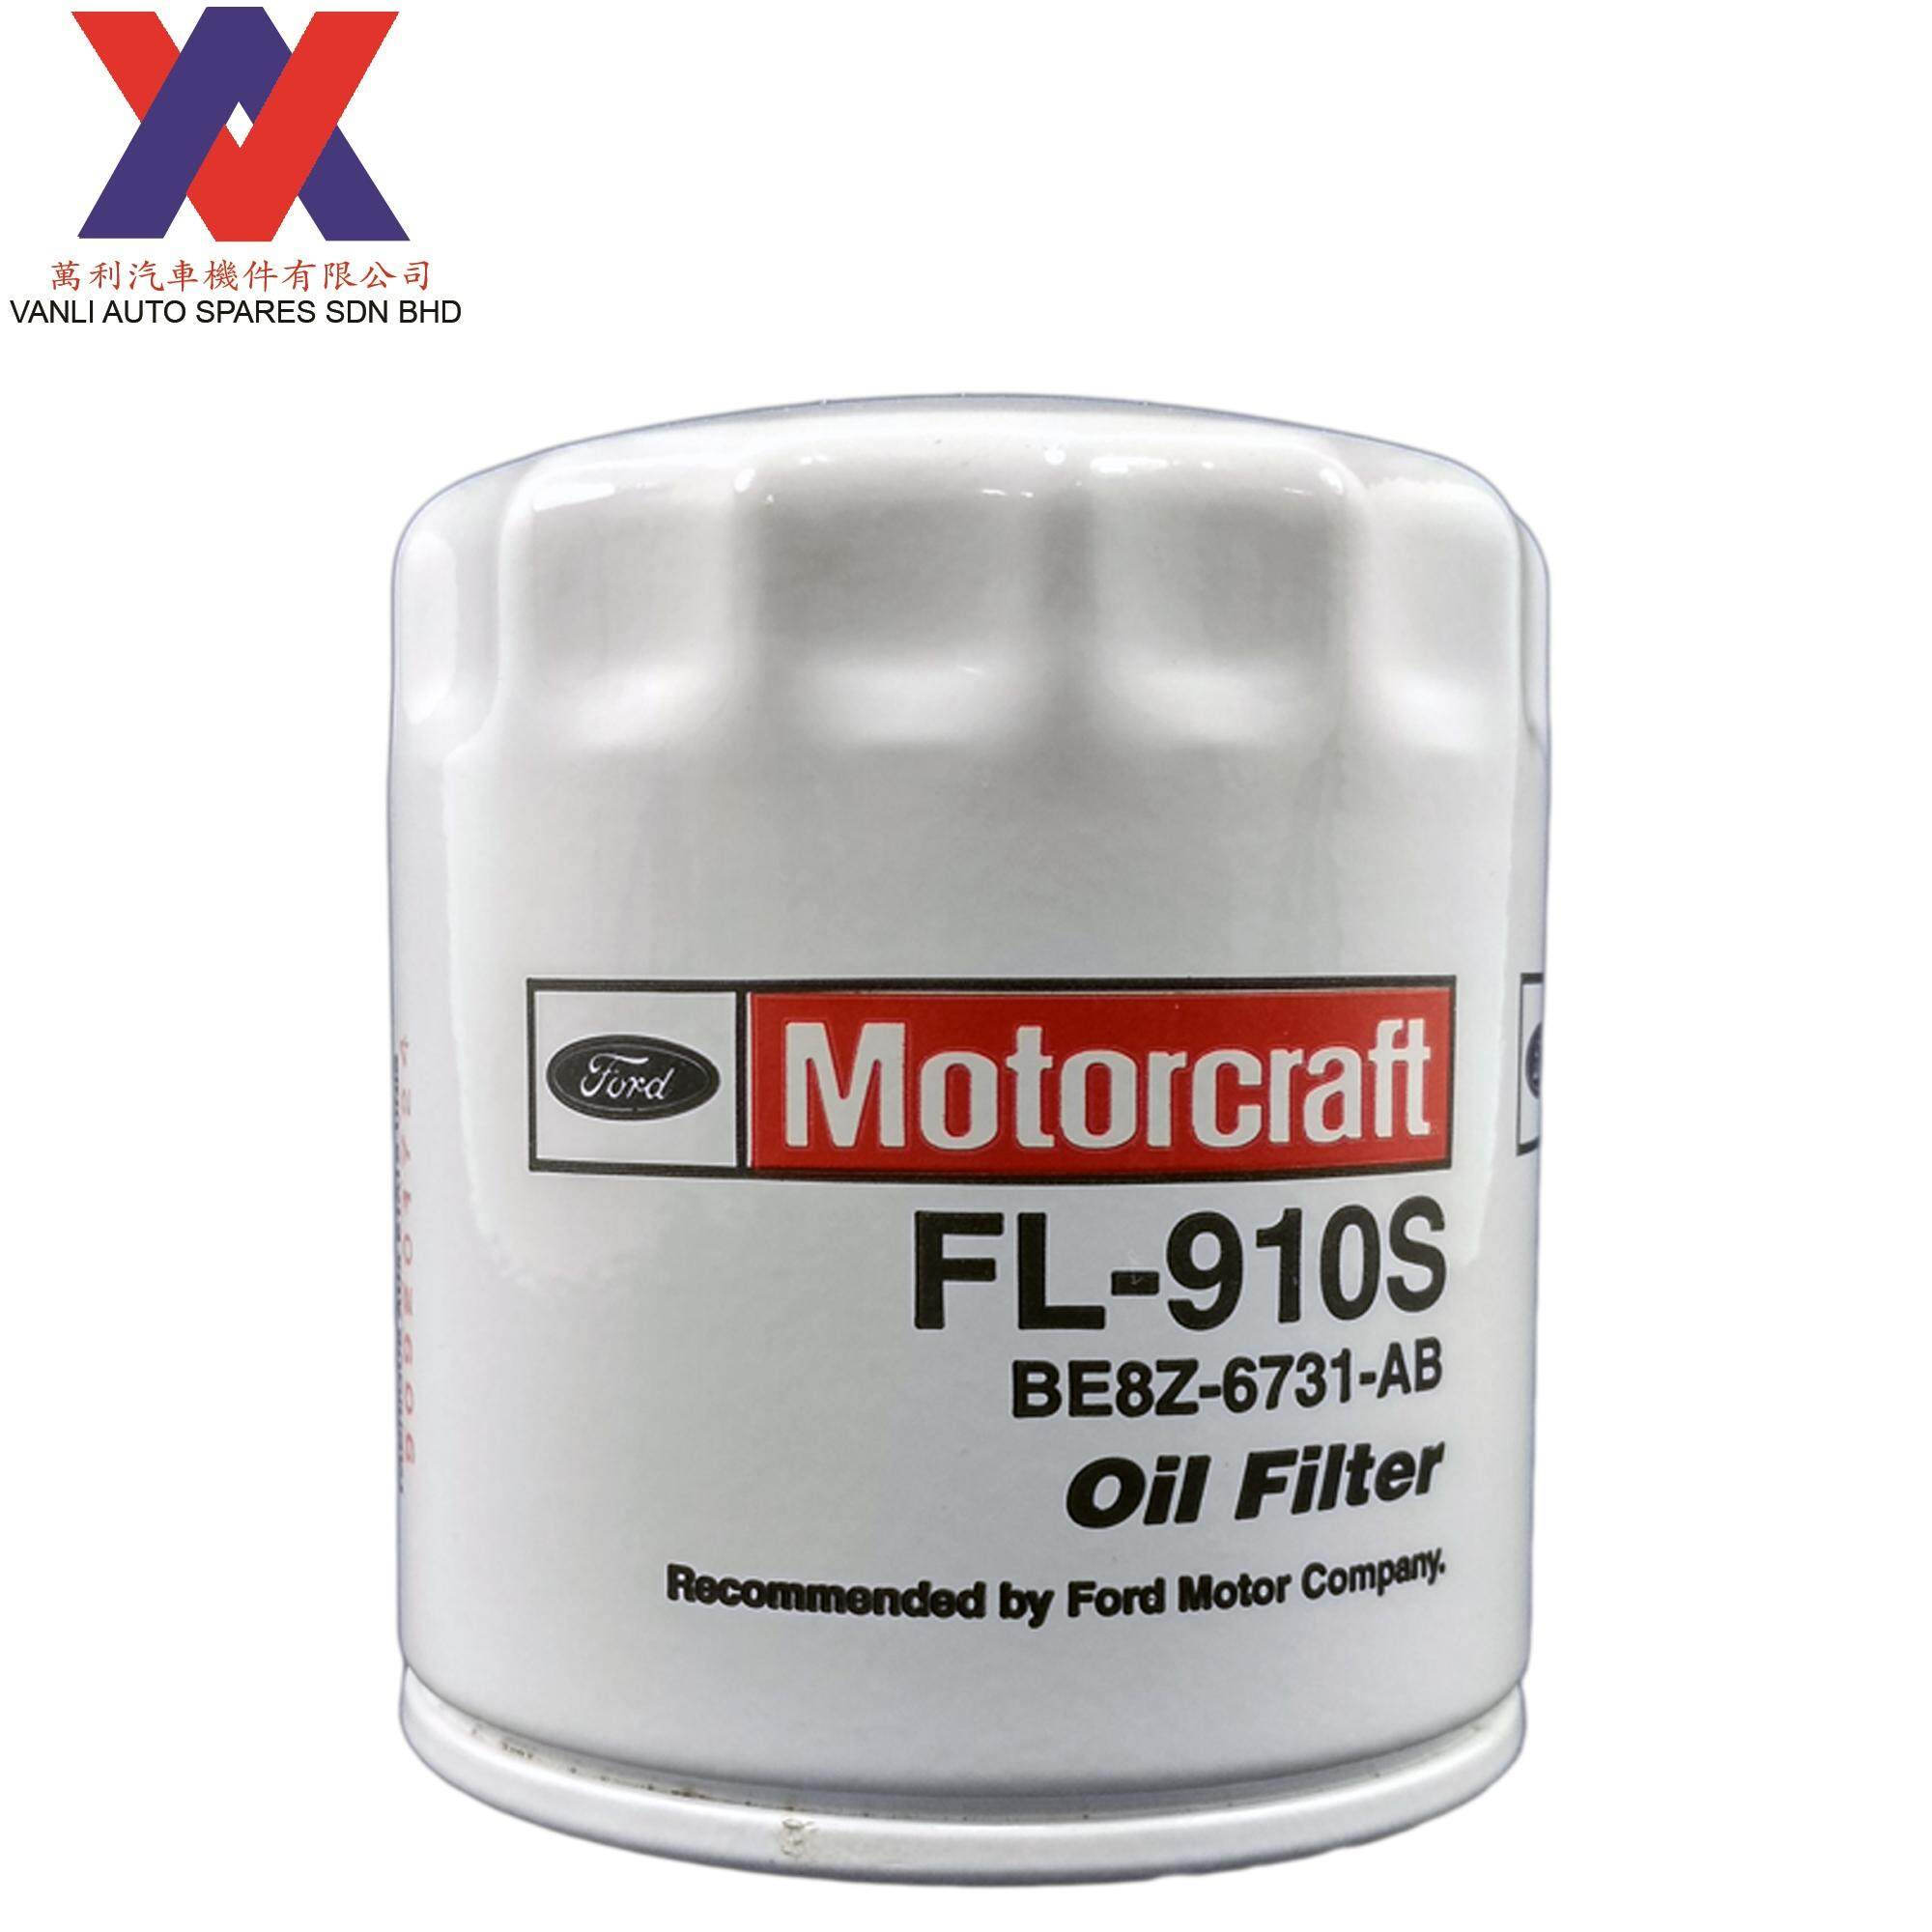 Ford Auto Parts Spares Price In Malaysia Best Fuel Filter 2010 Ranger Motorcraft Oil Be82 67 31ac